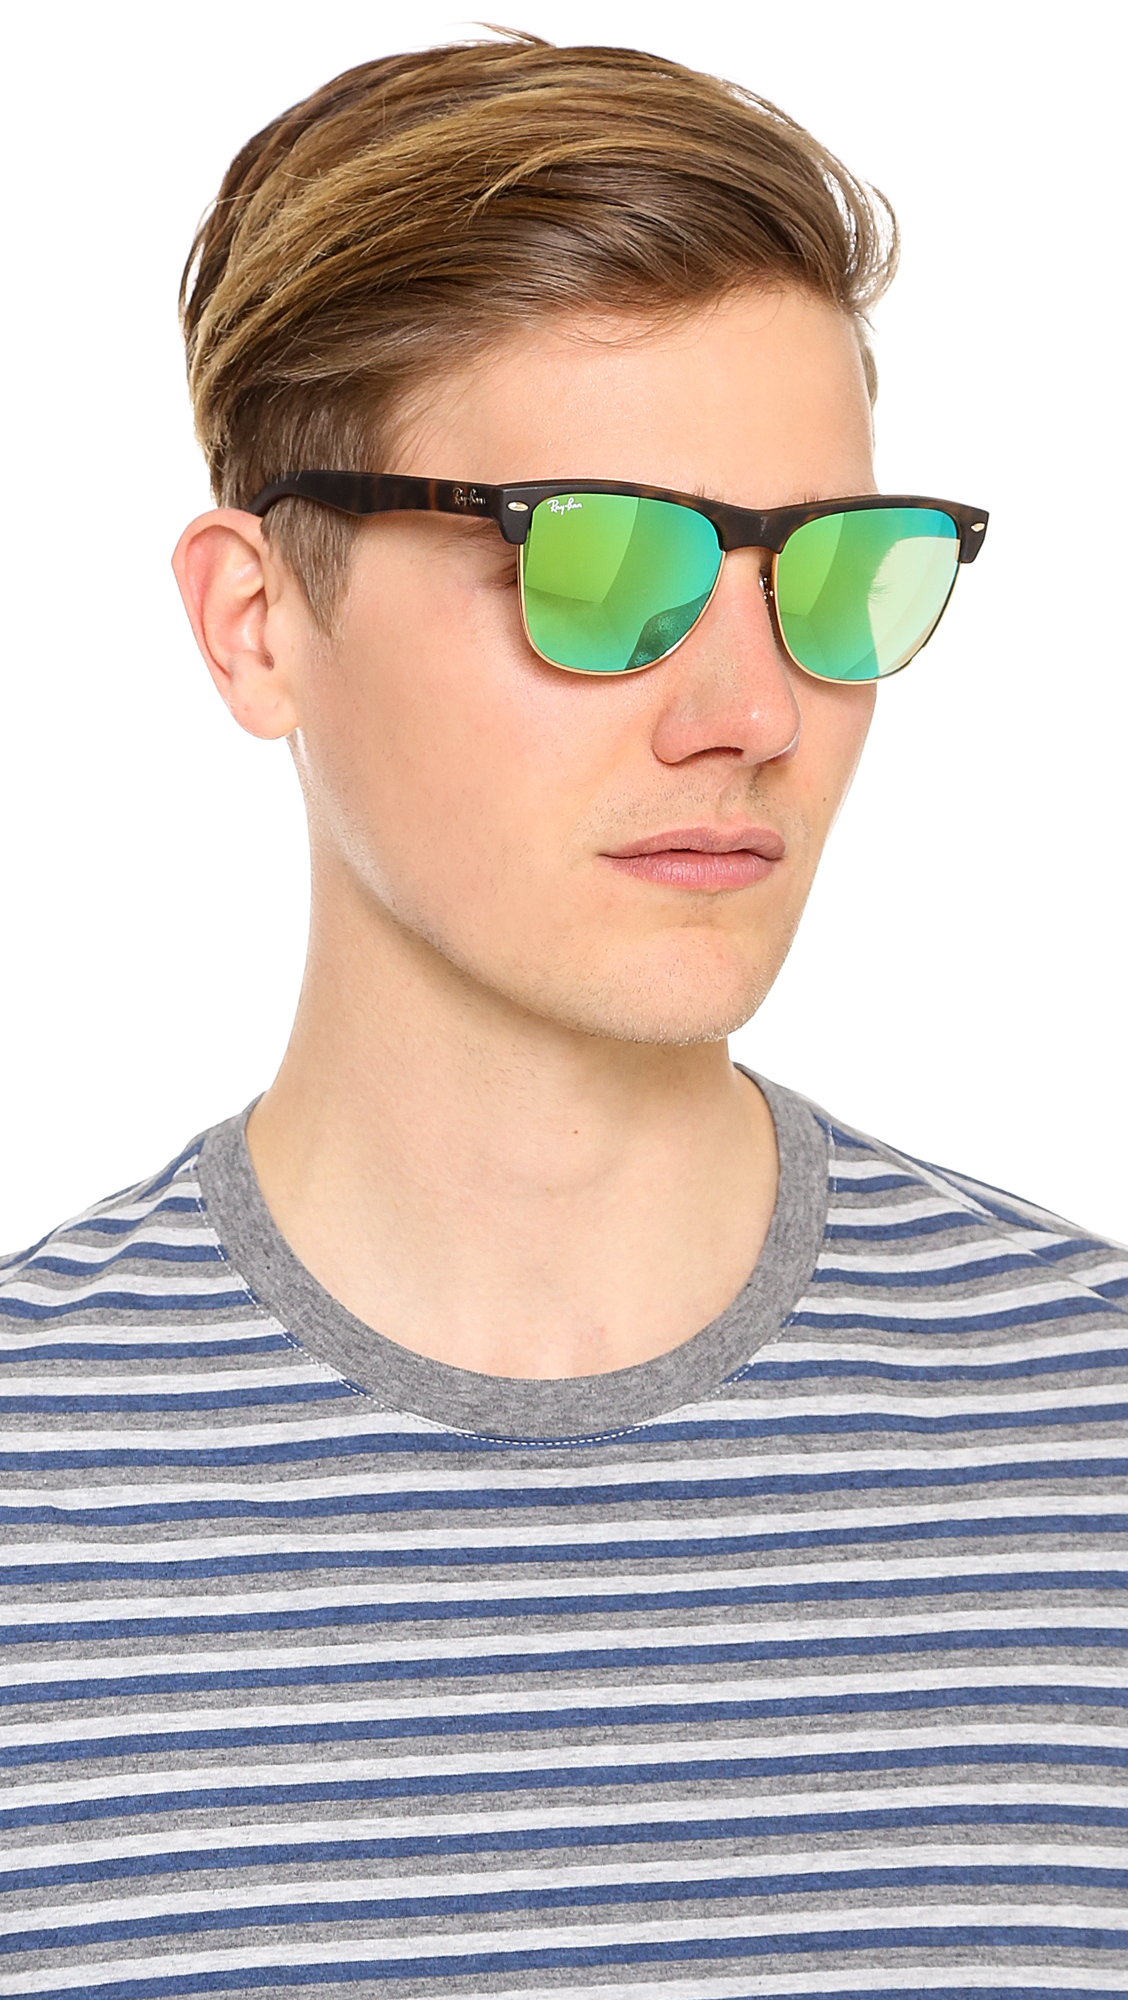 ray ban oversized clubmaster sunglasses  Ray-Ban Oversized Clubmaster Sunglasses with Mirrored Lens